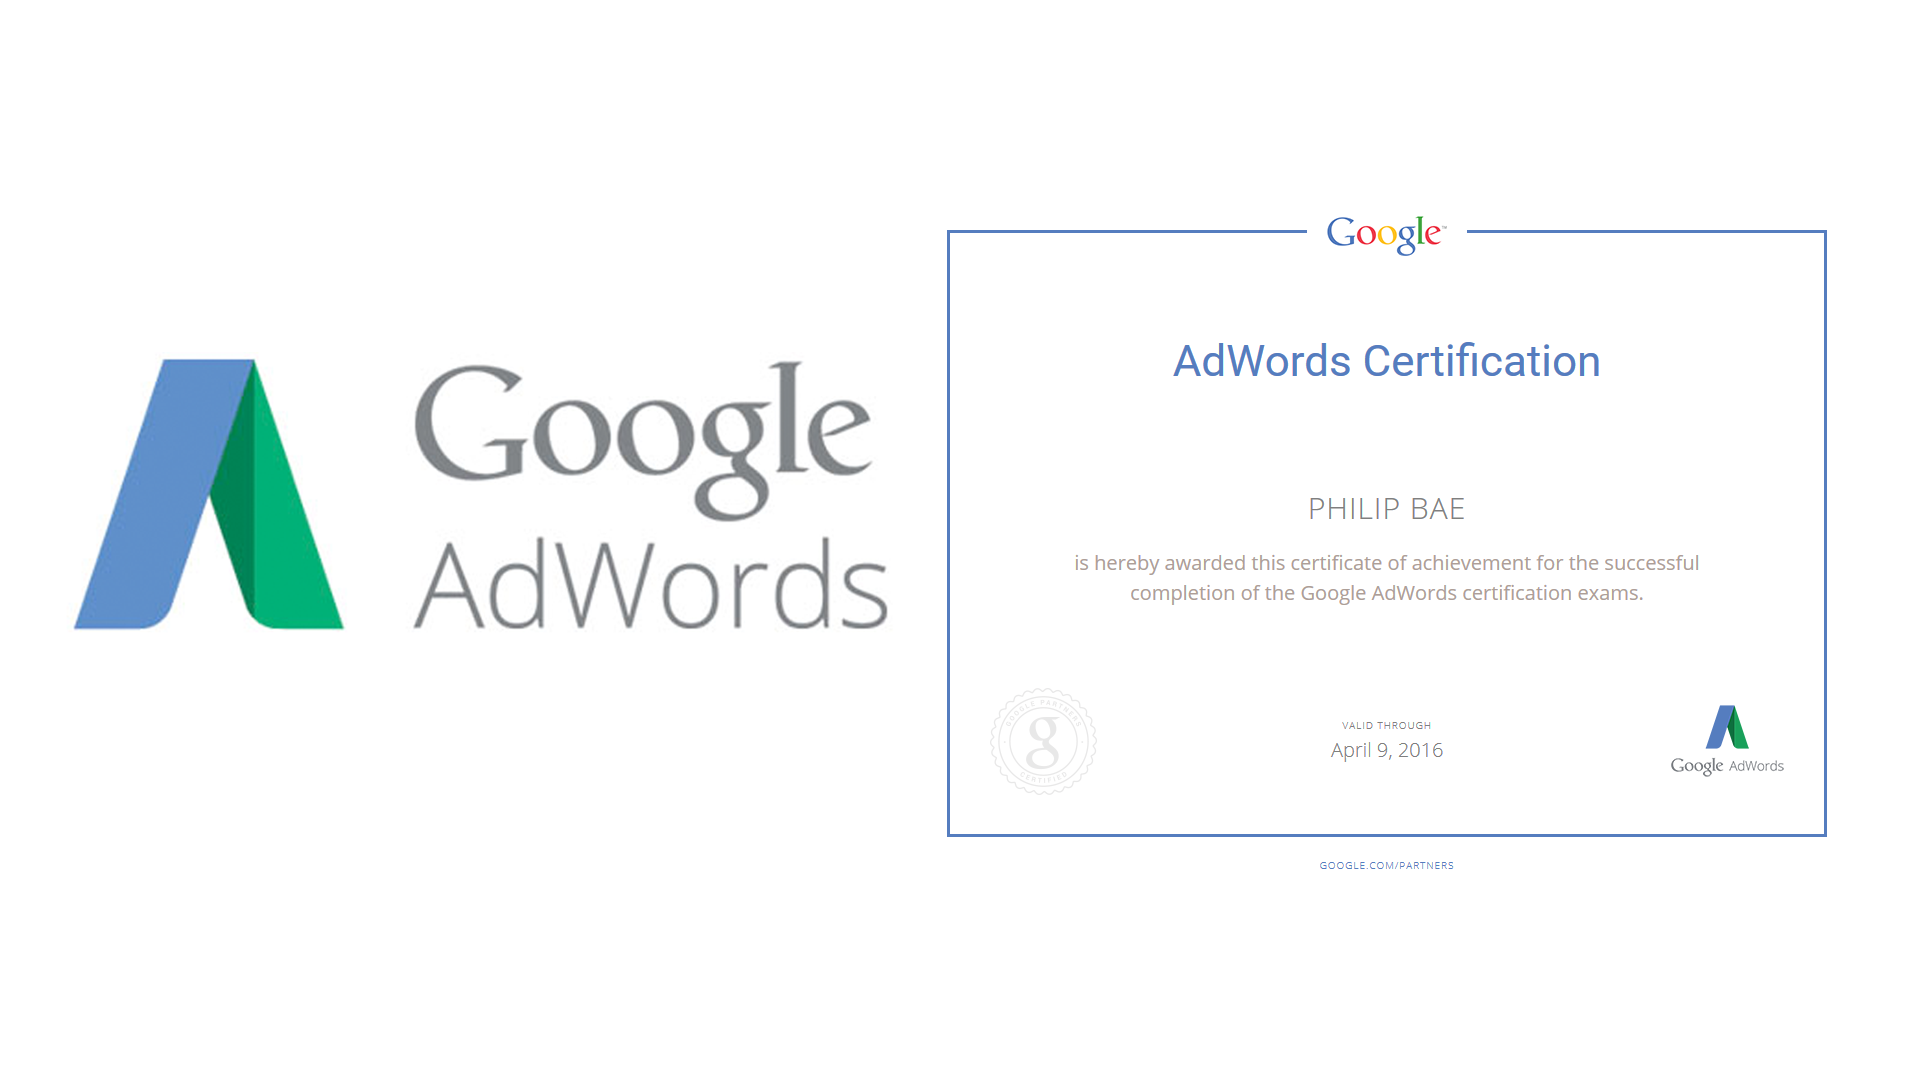 Best Study Guide To Prepare For Google Adwords Certification